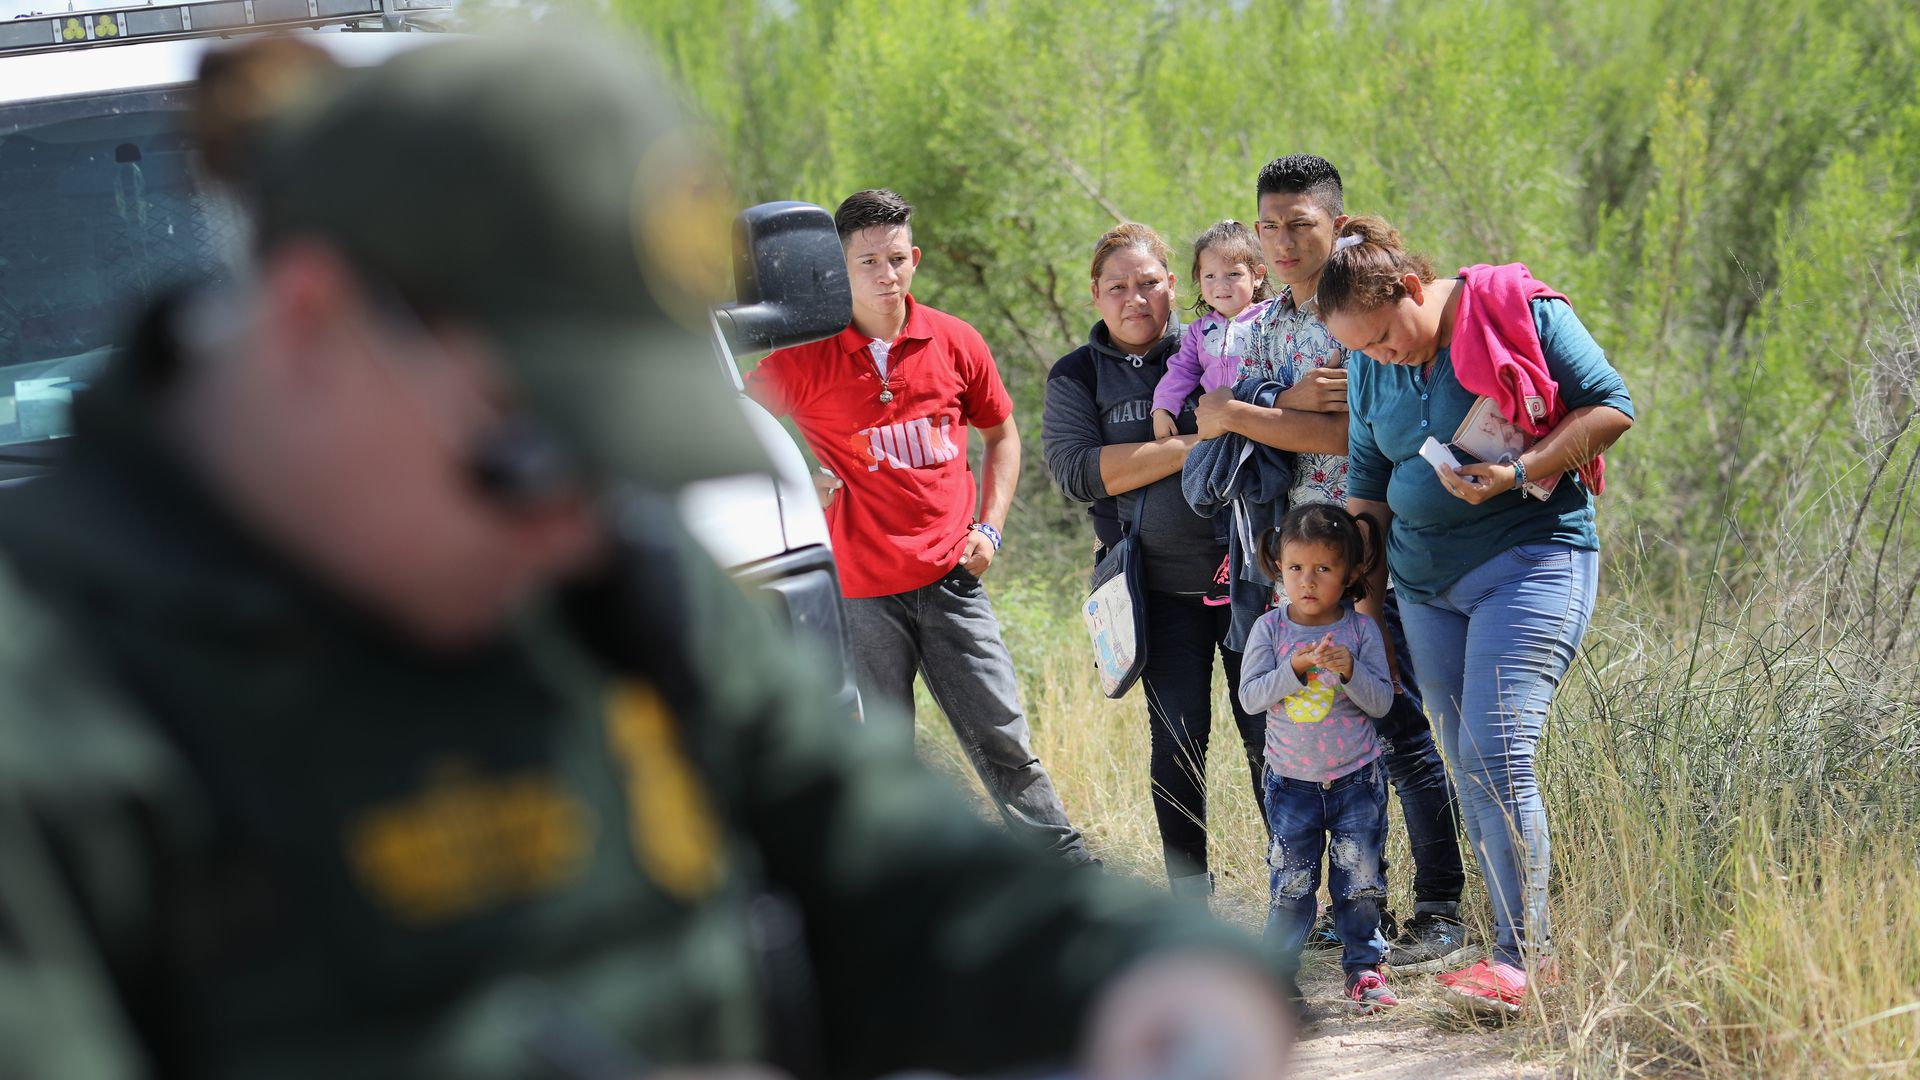 Central American asylum seekers wait as U.S. Border Patrol agents take groups of them into custody near McAllen, Texas last week. Photo: John Moore/Getty Images